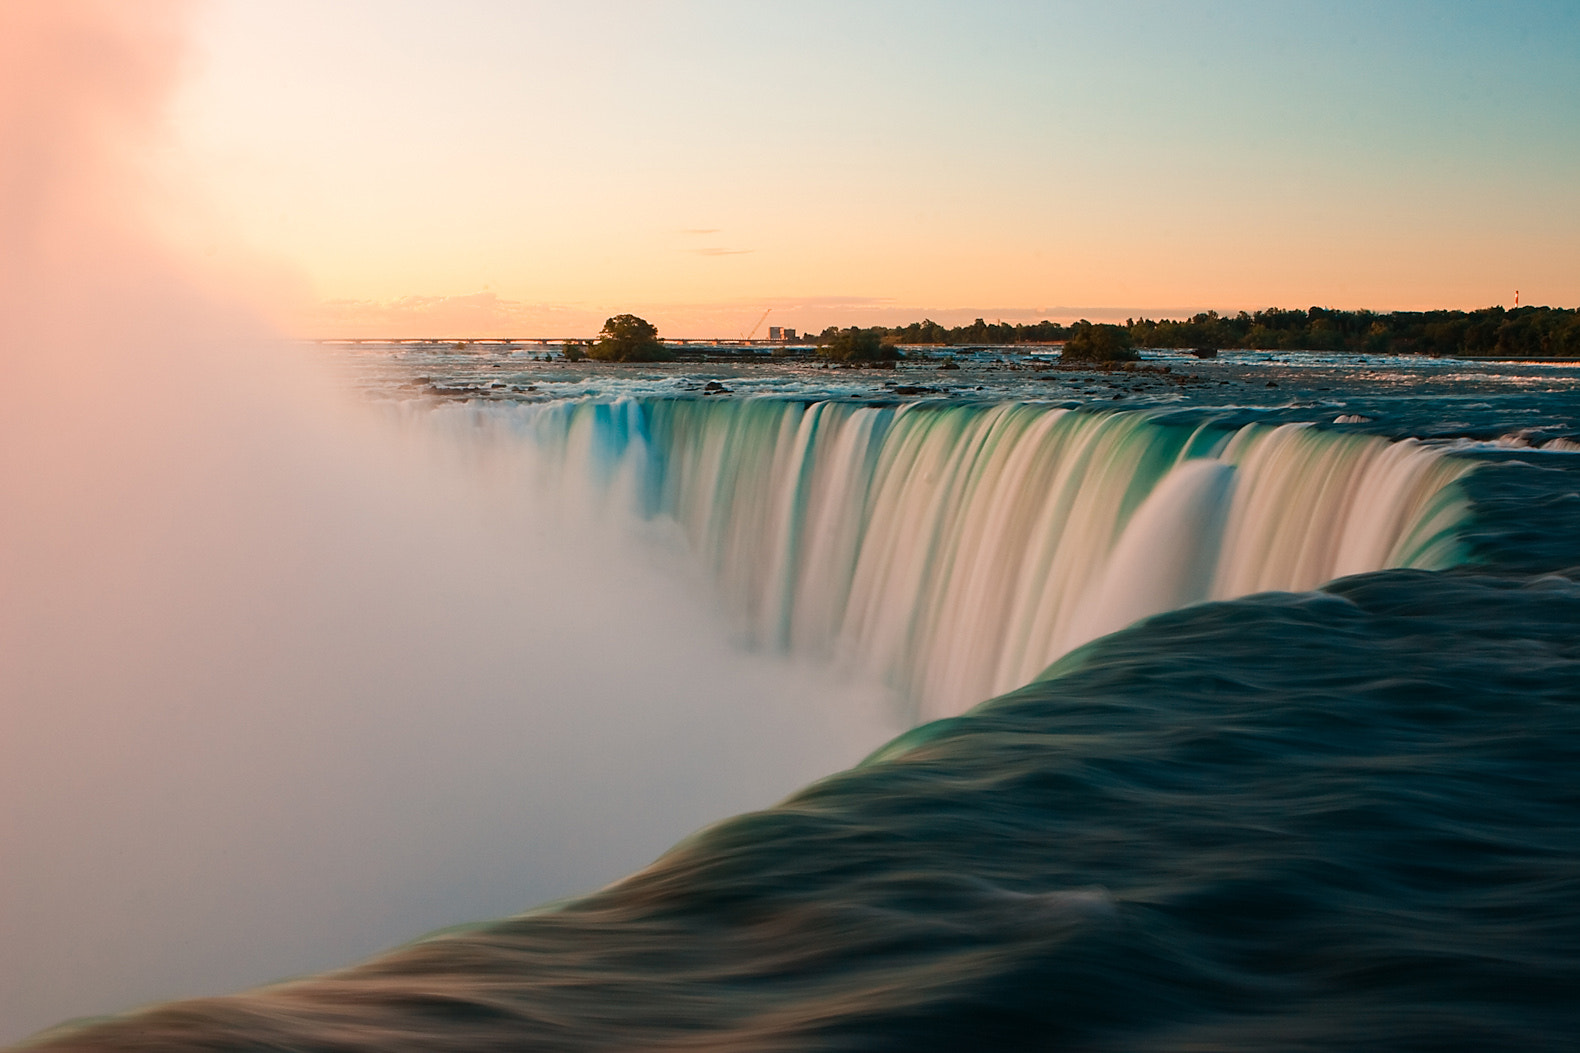 Photograph Sunrise at Niagara Falls (Canada) by Radomir Rezny on 500px